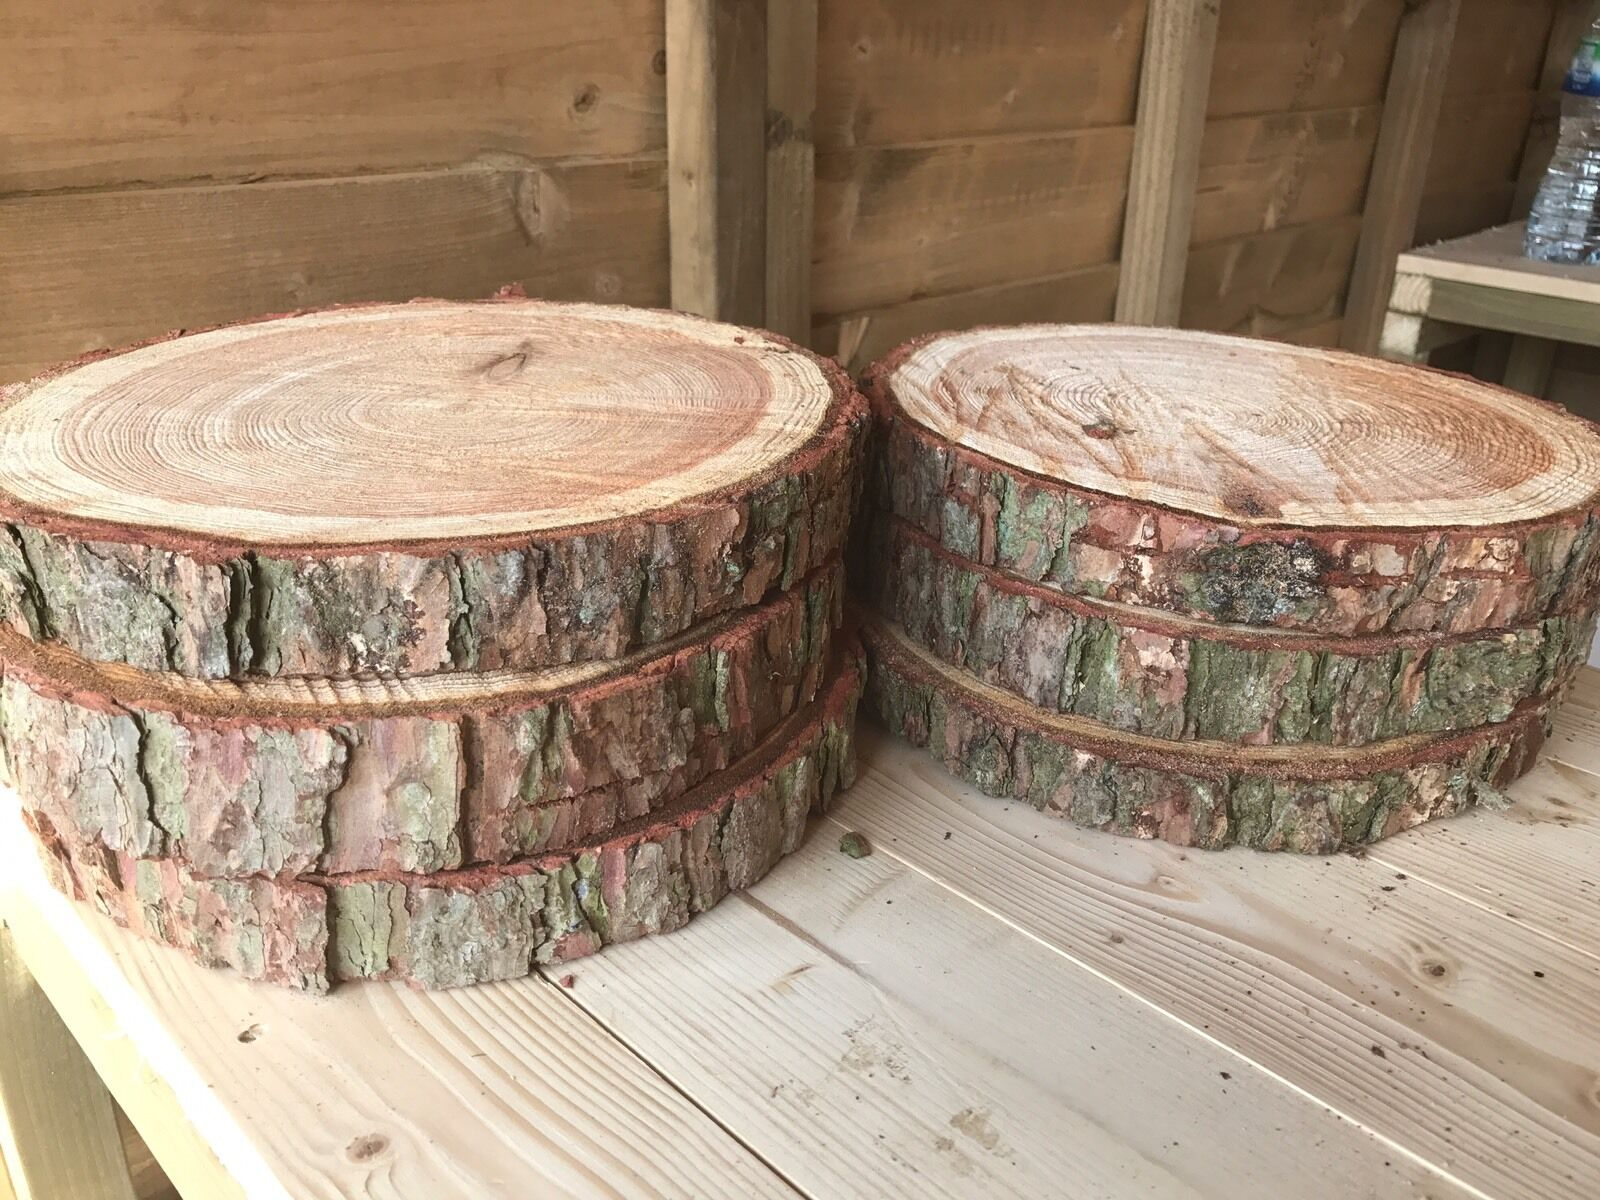 6 Rustic logs approx 12  (30cm) wedding table centerpieces with bark cake stands